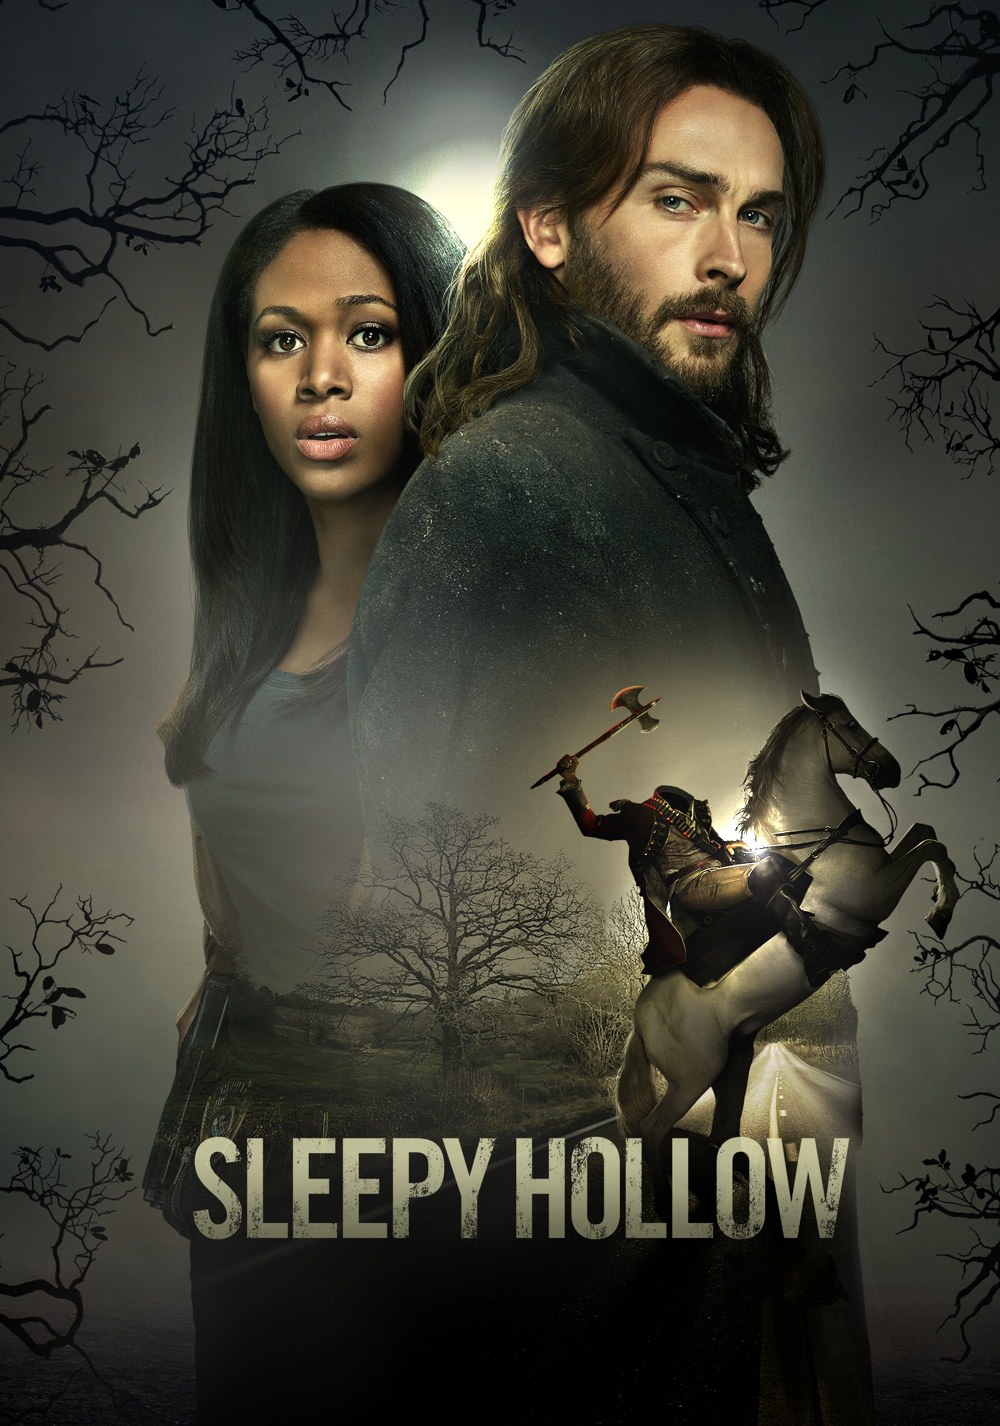 Sleepy Hollow on netflix